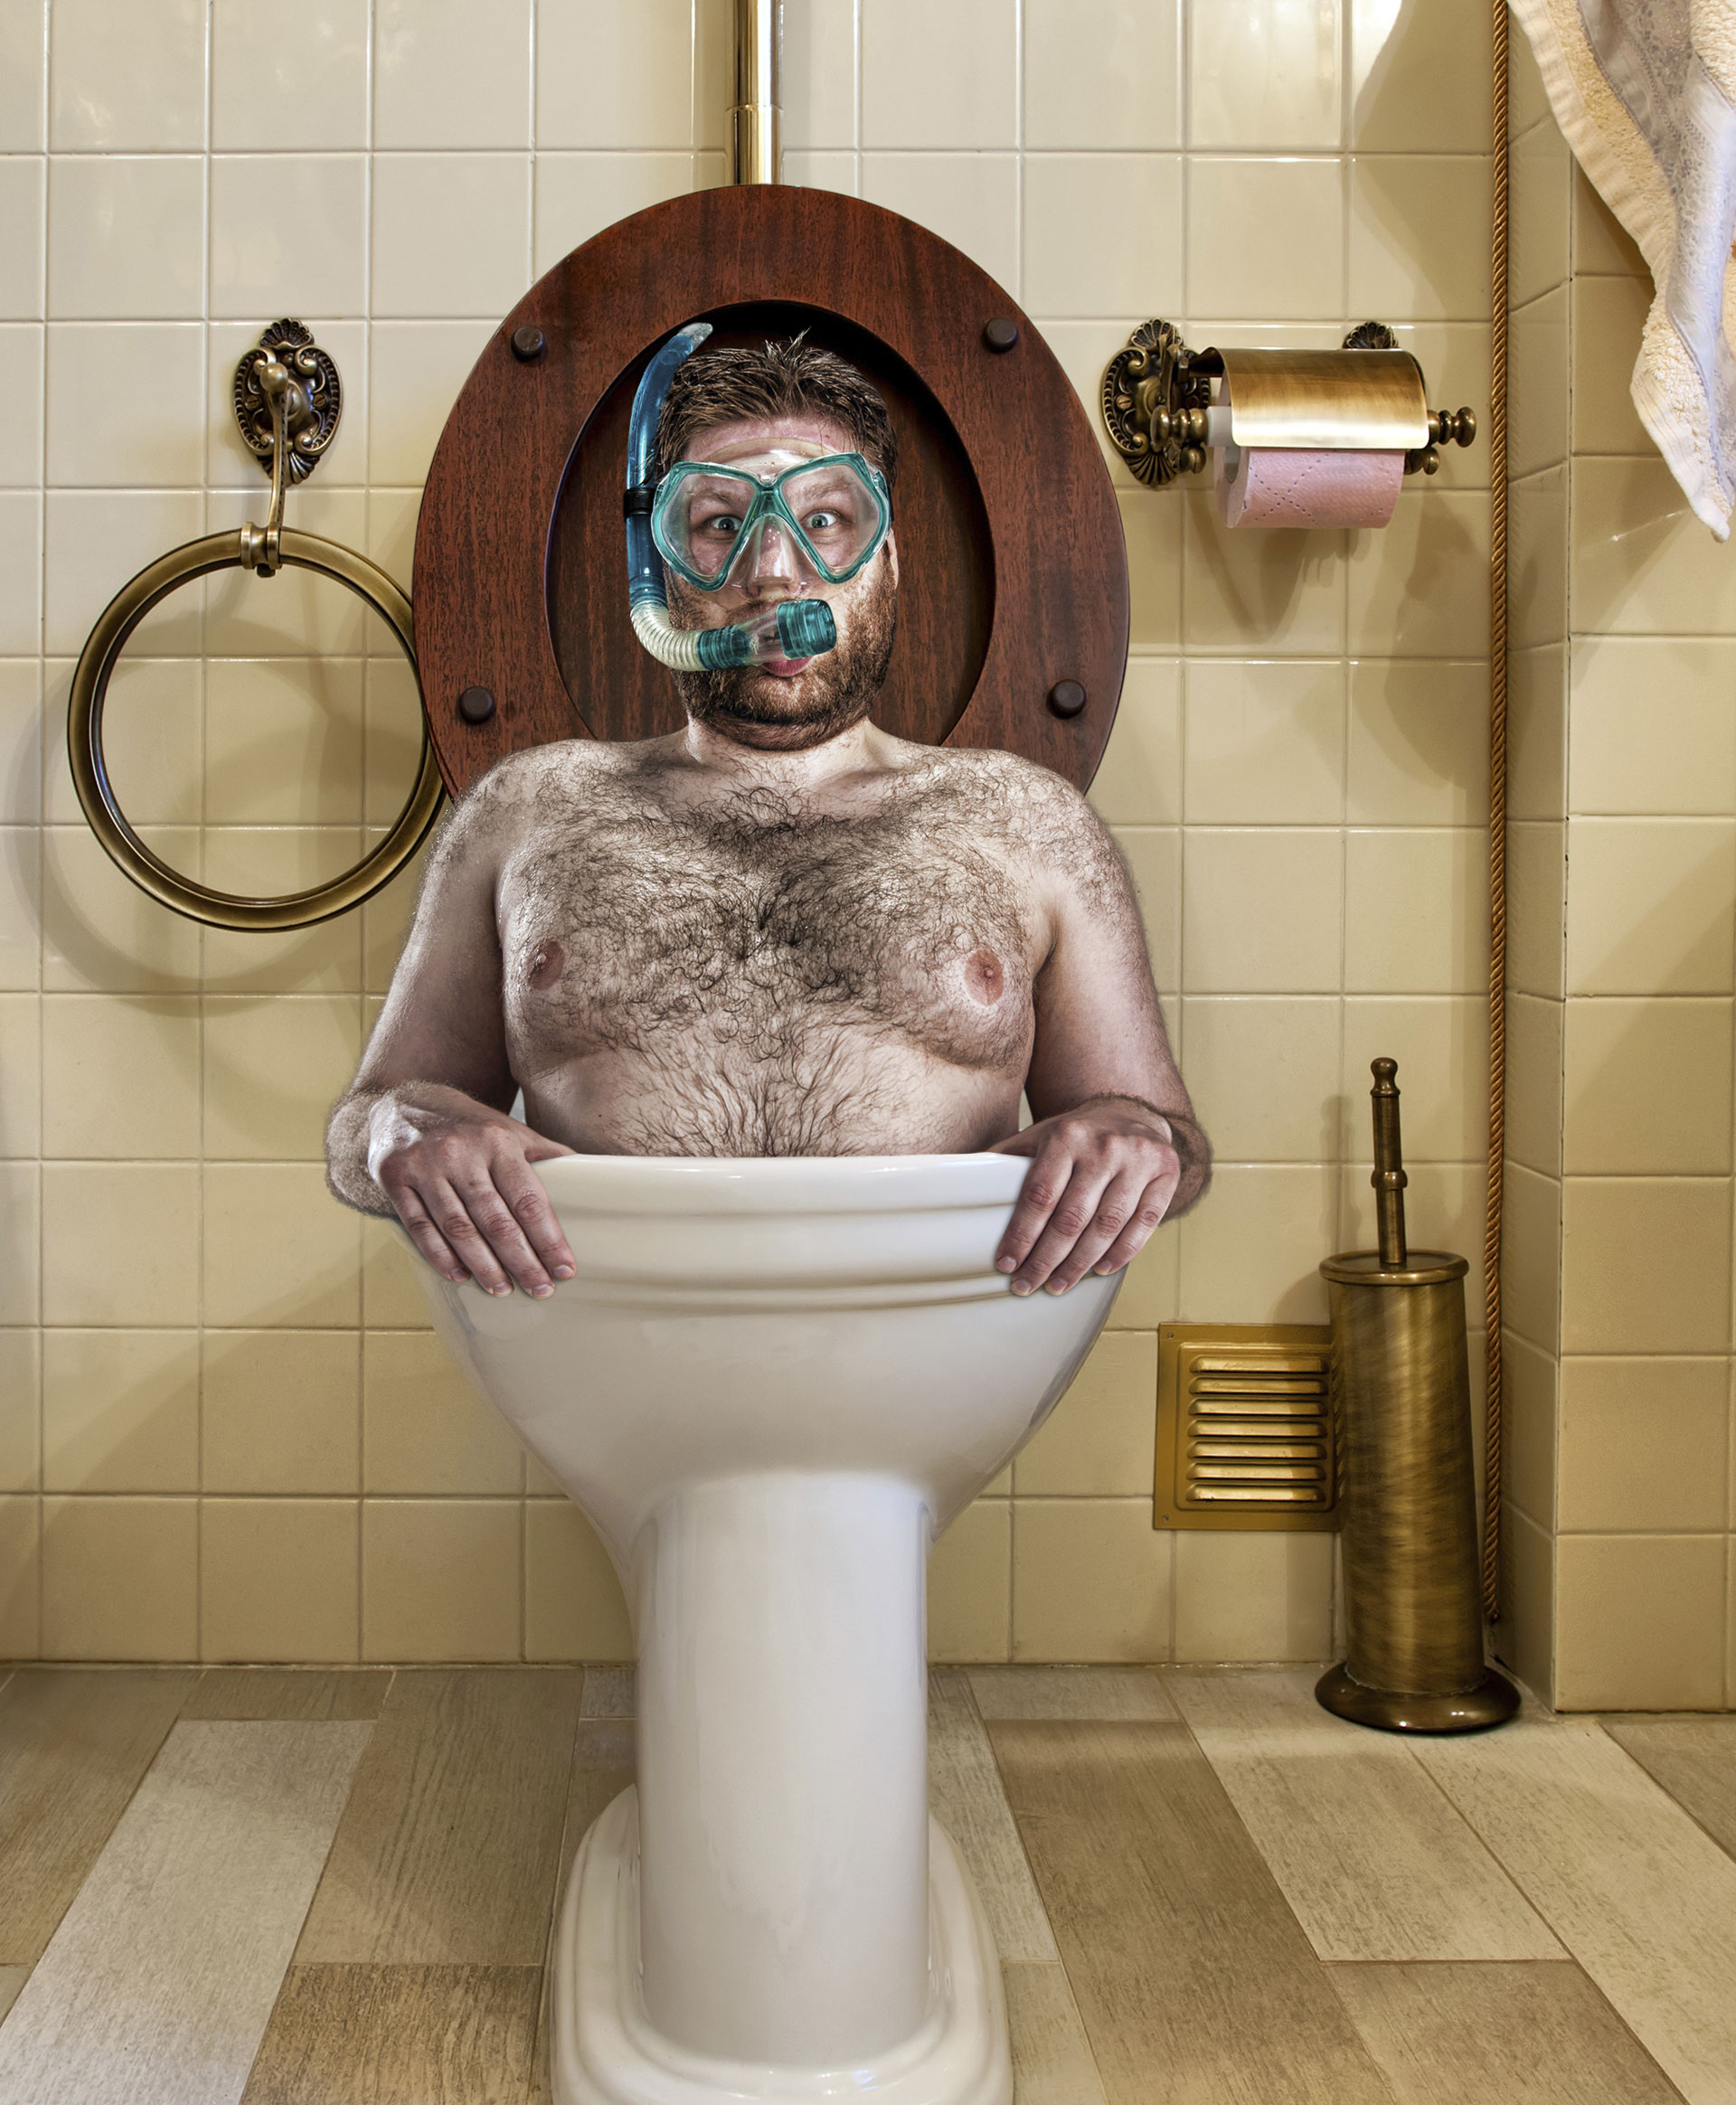 Bizarre man in vintage toilet